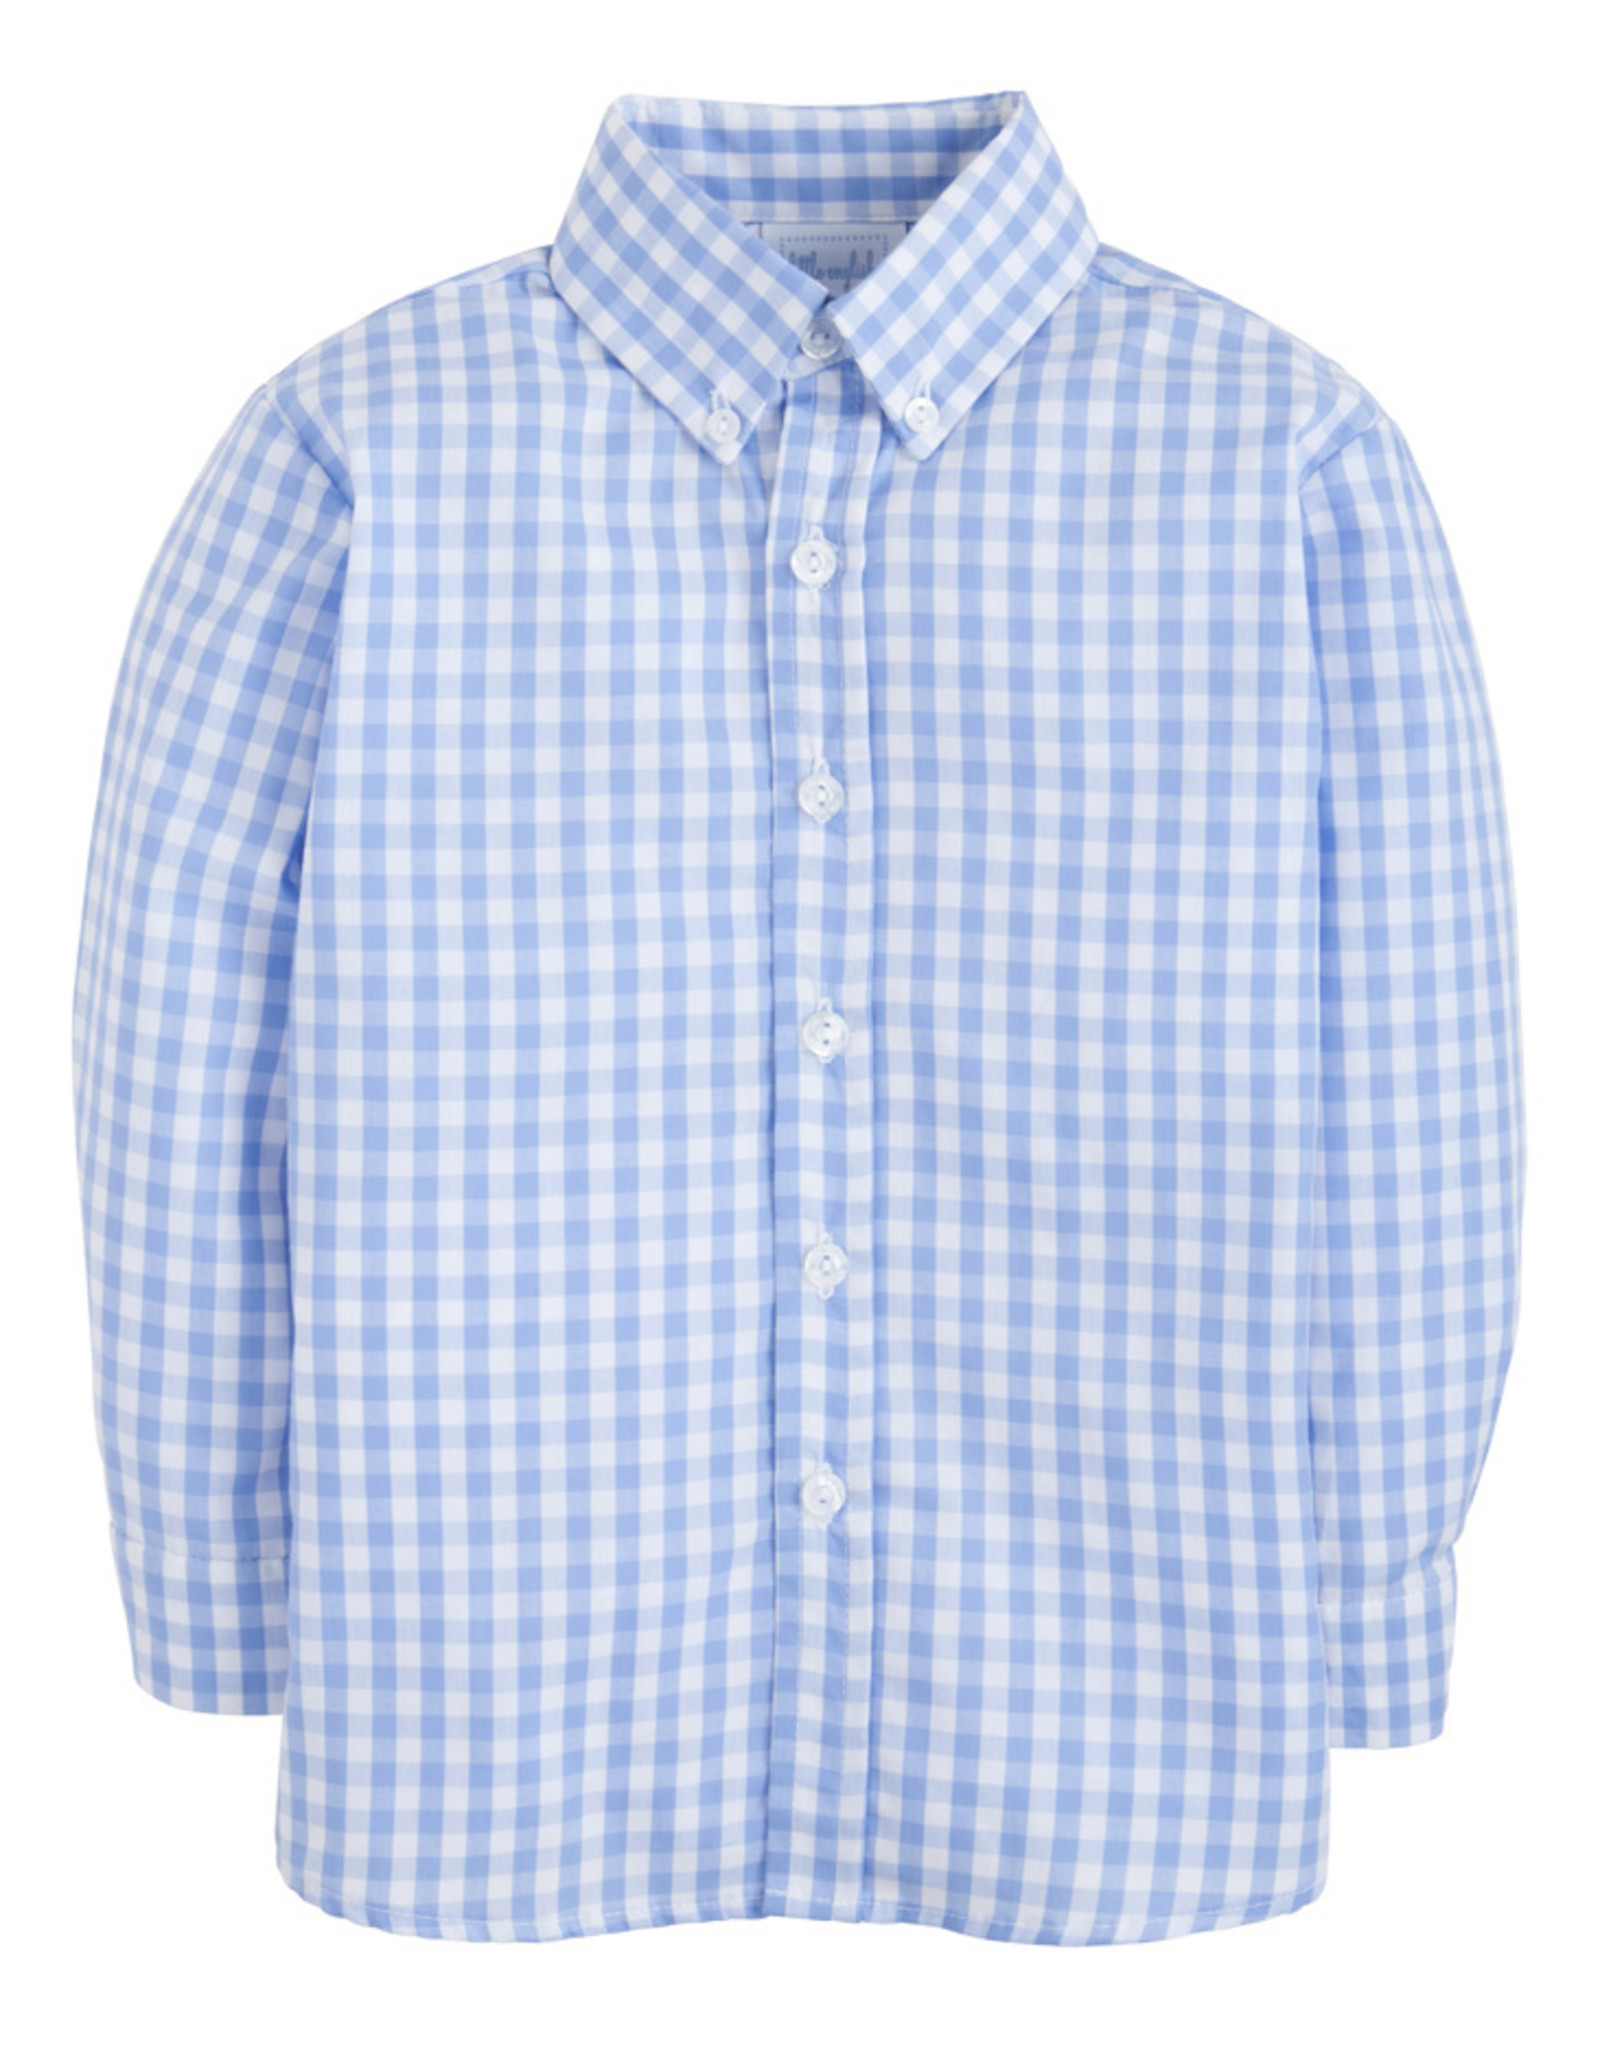 Little English Button Down Shirt